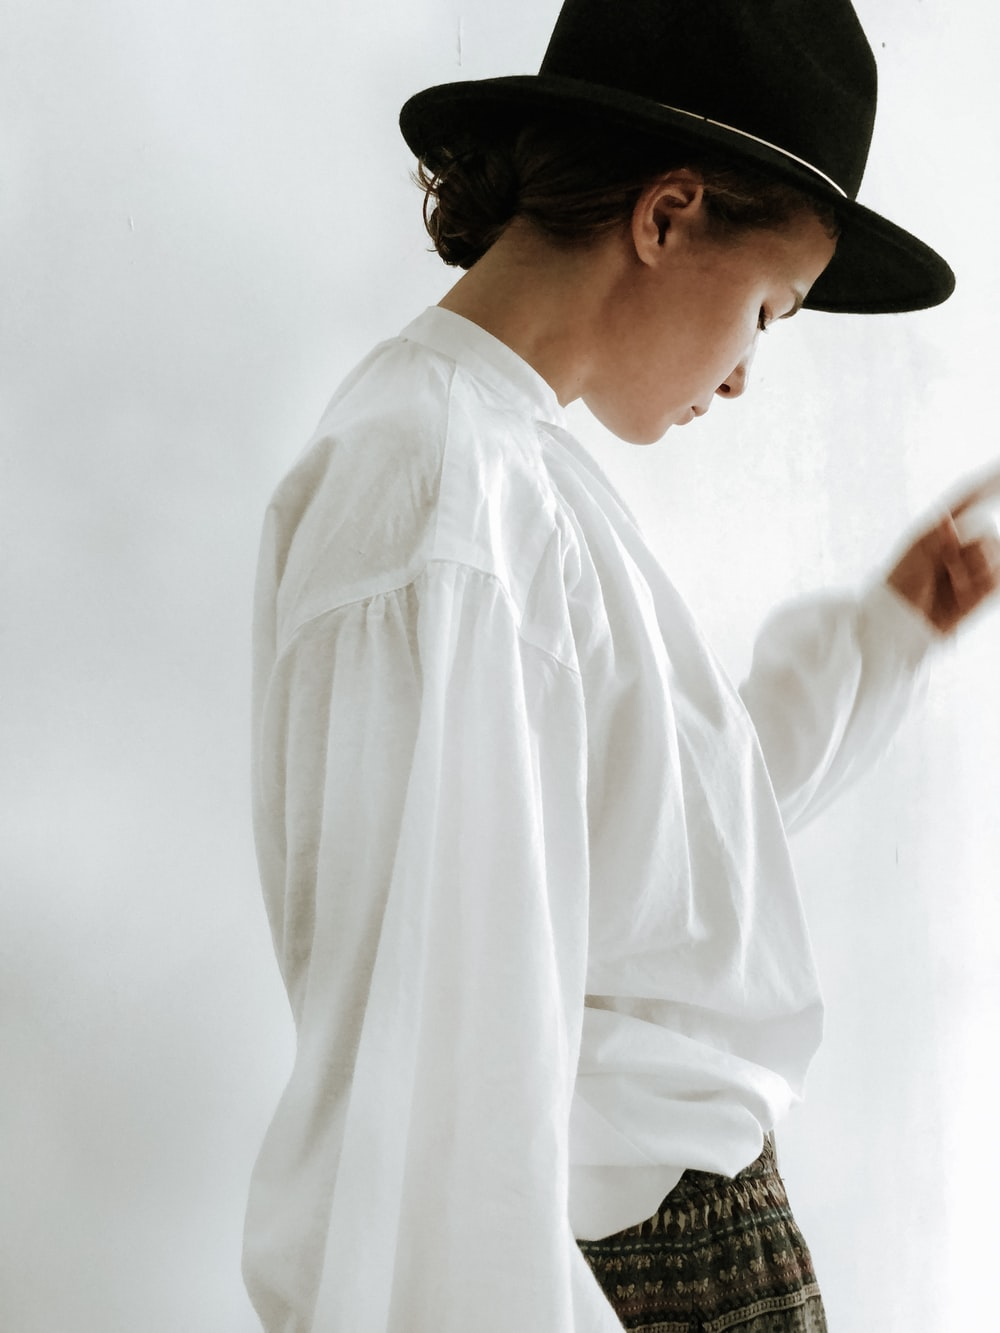 woman in white dress shirt and black fedora hat